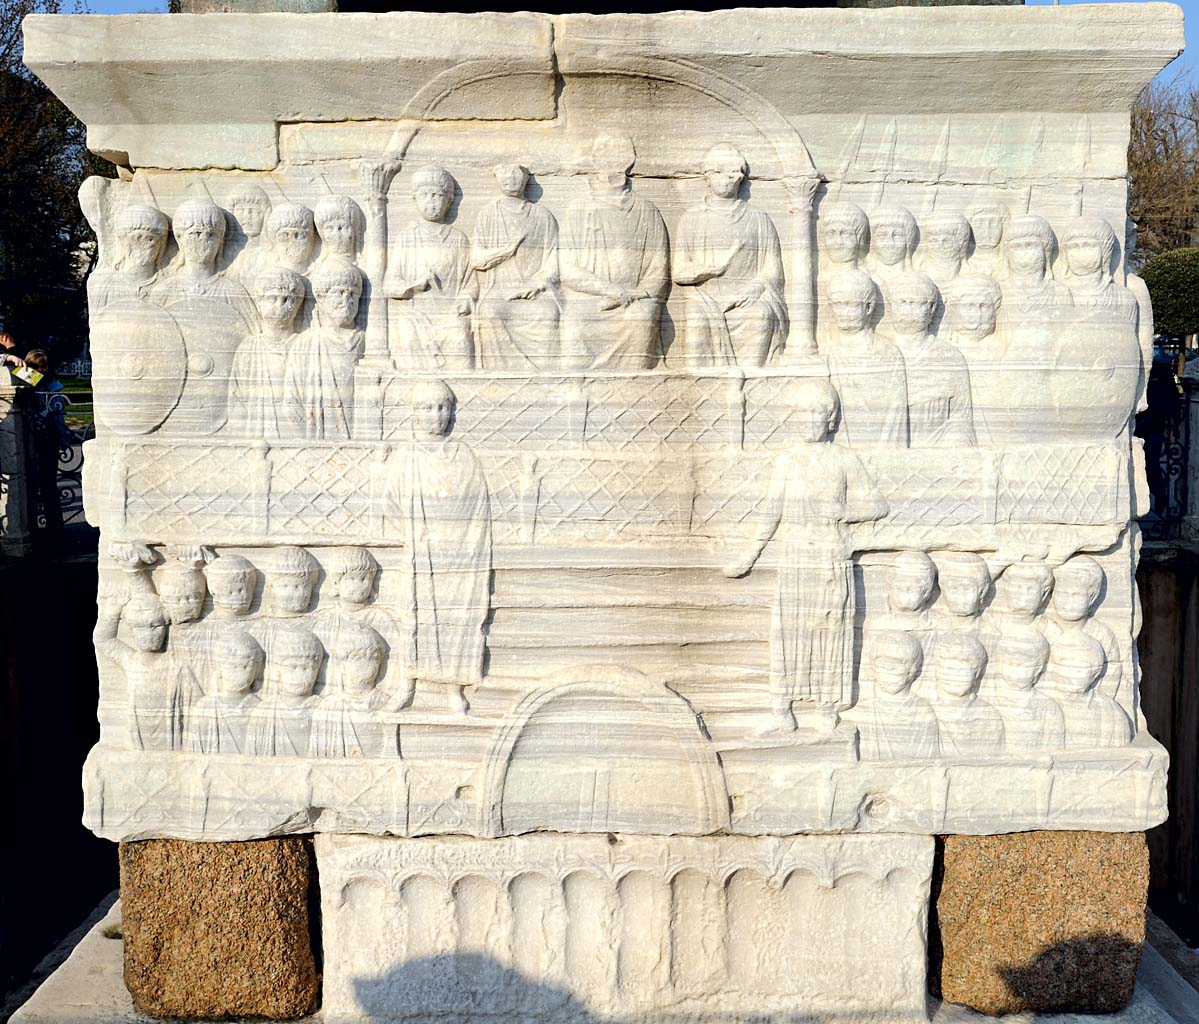 The emperor and his court. Pedestal of the Obelisk of Theodosius. South side. Hippodrome of Constantinople. 390 CE. Istanbul